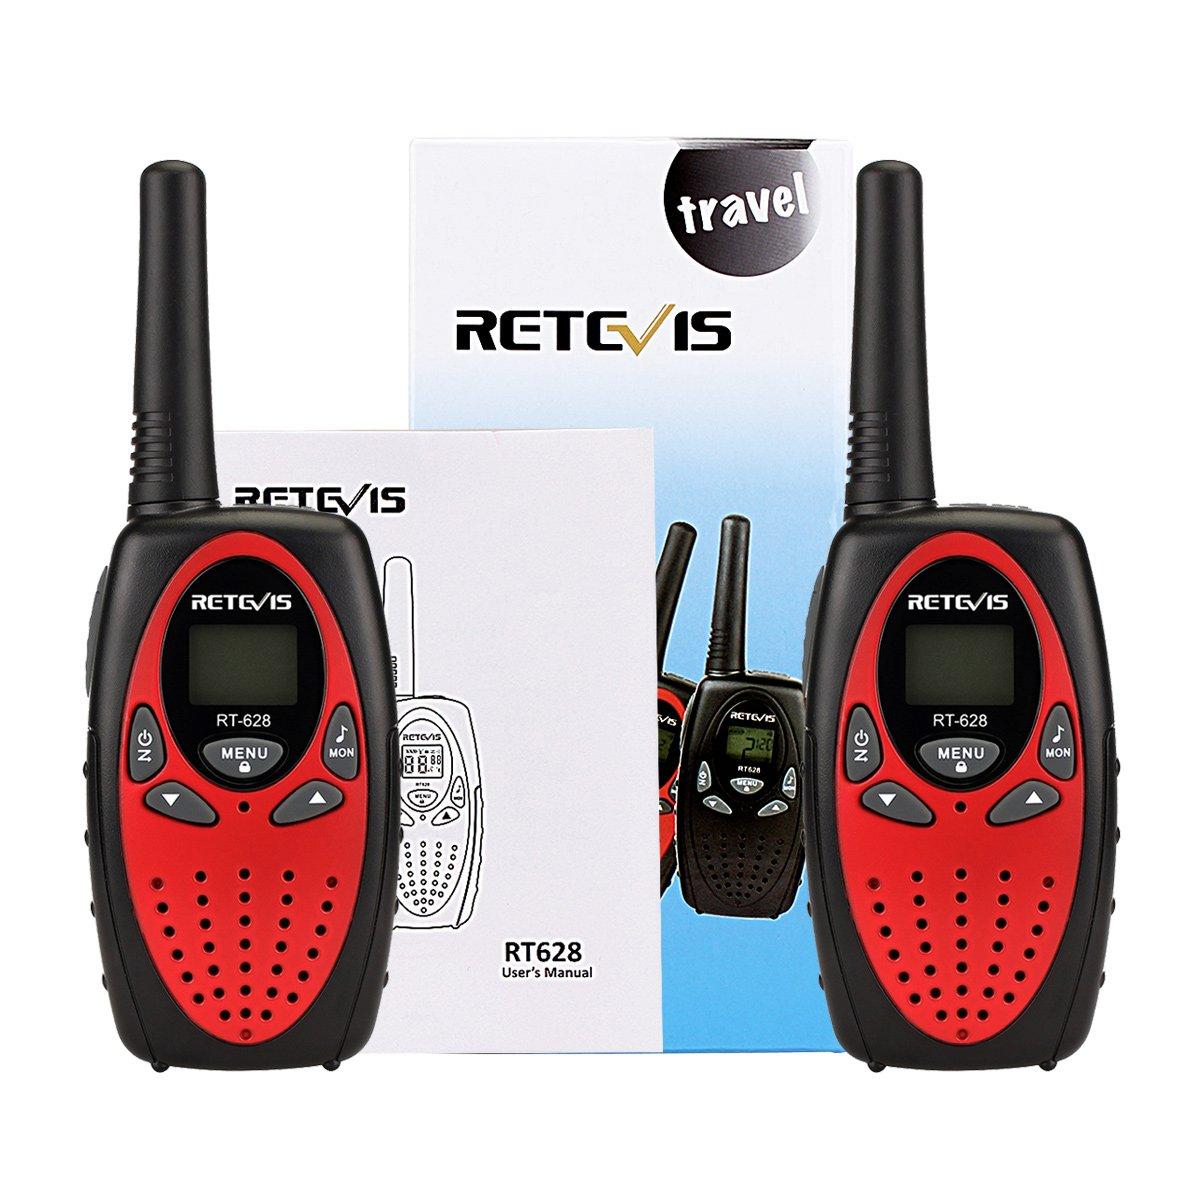 Retevis RT628 Walkie Talkies 22CH VOX FRS License-Free 2 Way Radios UHF Handheld Two Way Radio(4 Pack,Red) by Retevis (Image #7)